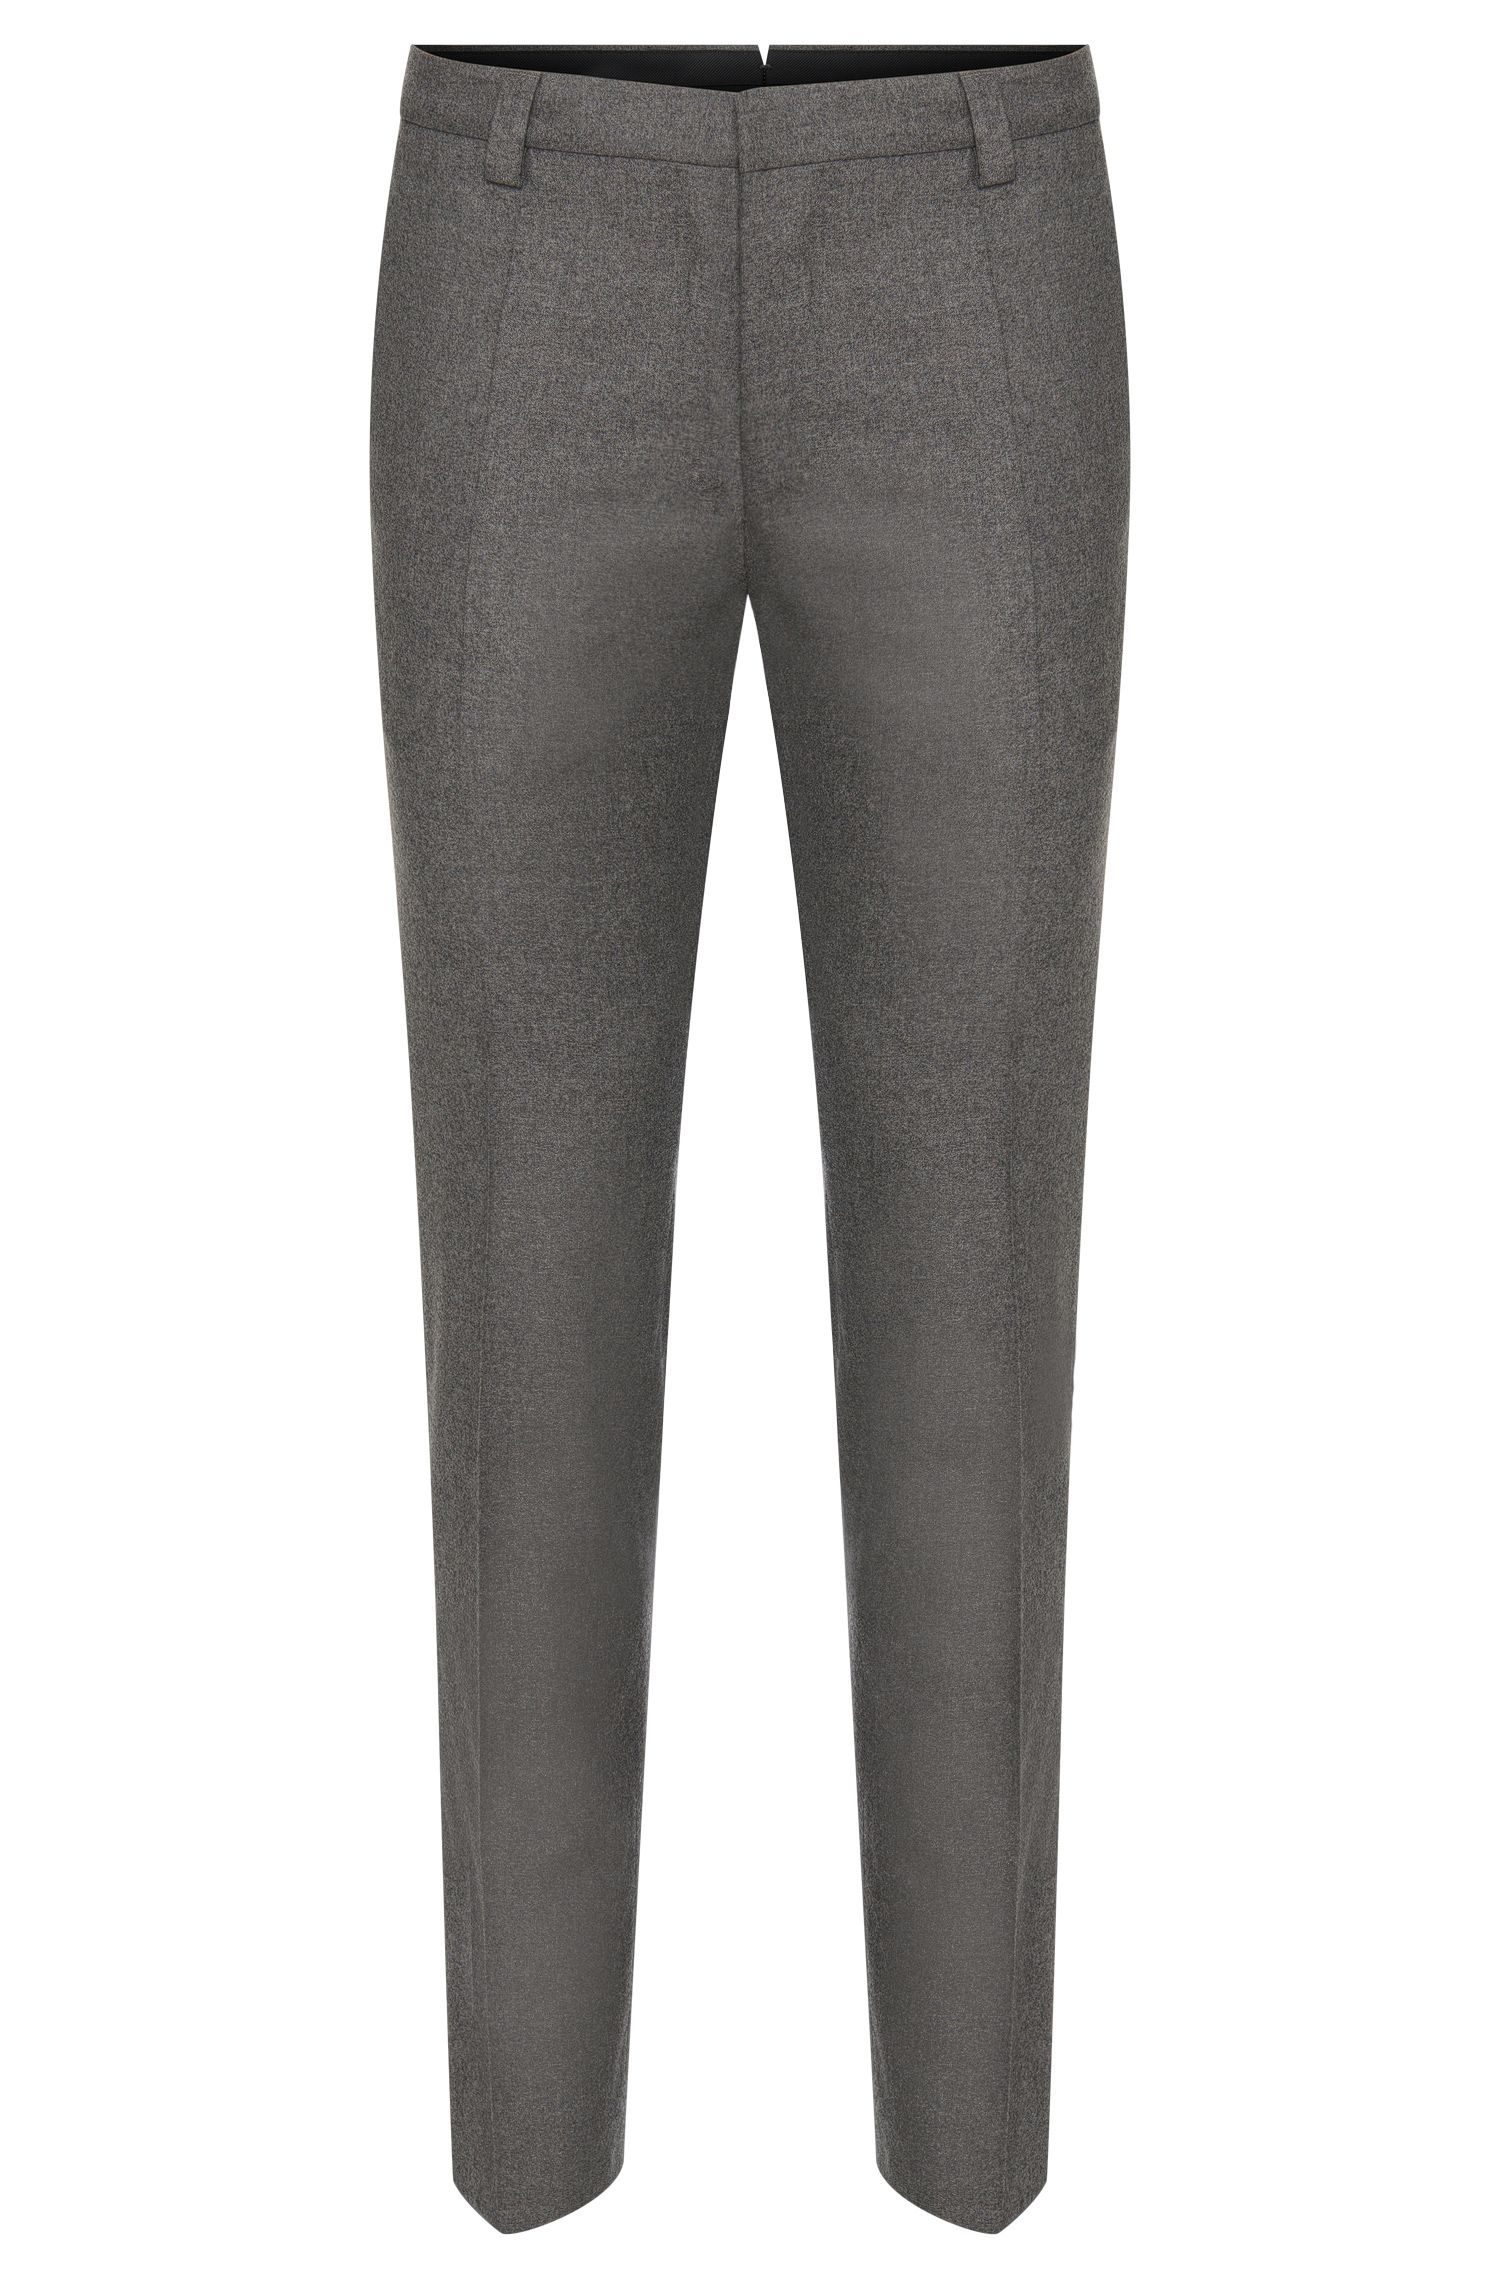 'Alec' | Slim Fit, Stretch Virgin Wool Cashmere Dress Pants